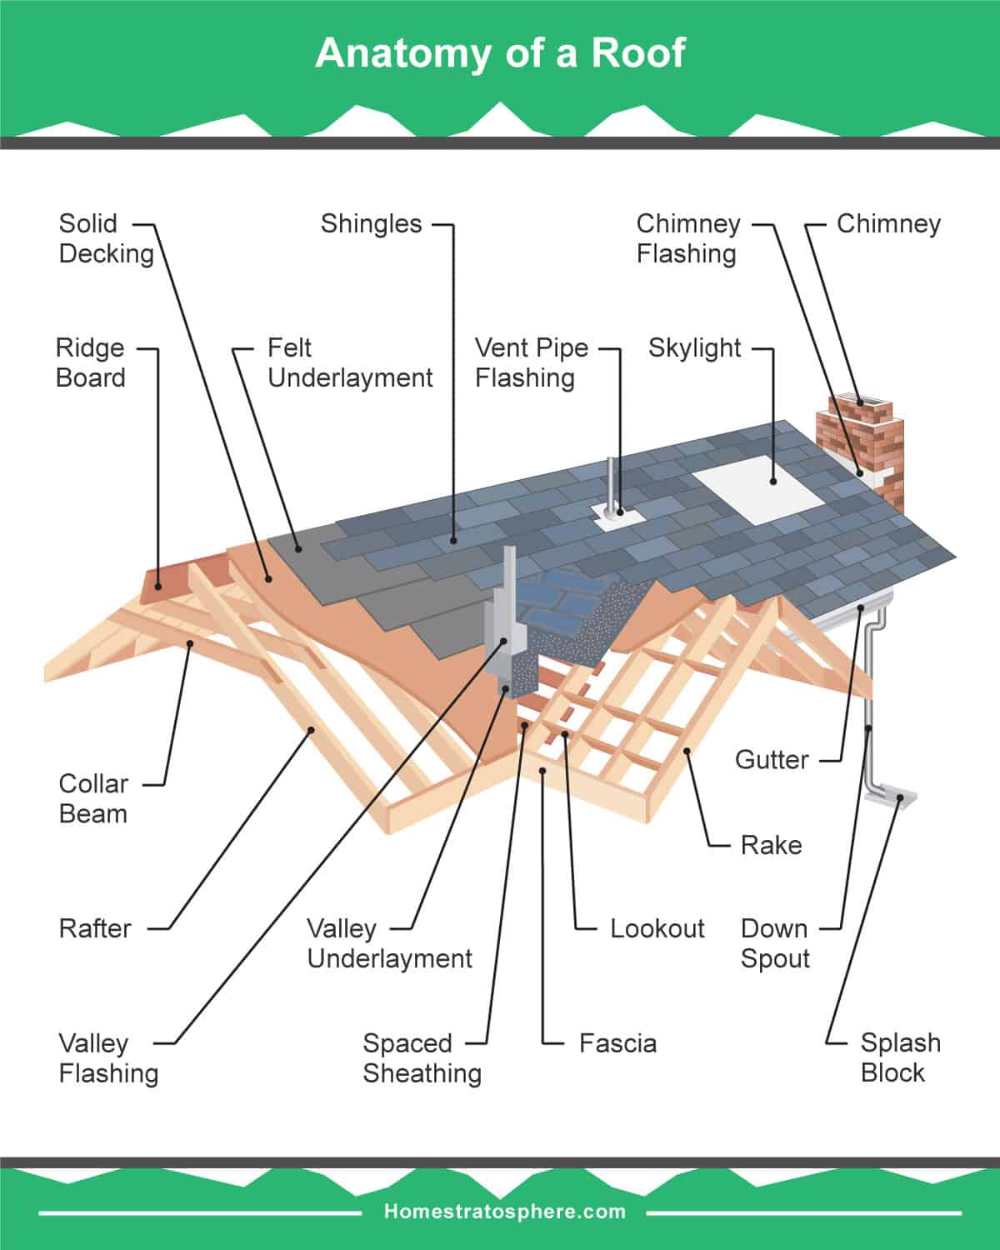 6 Effective Diy Roof Repair Options To Fix Different Types Of Roof Leaks In 2020 Roof Cladding Roof Design Roof Structure